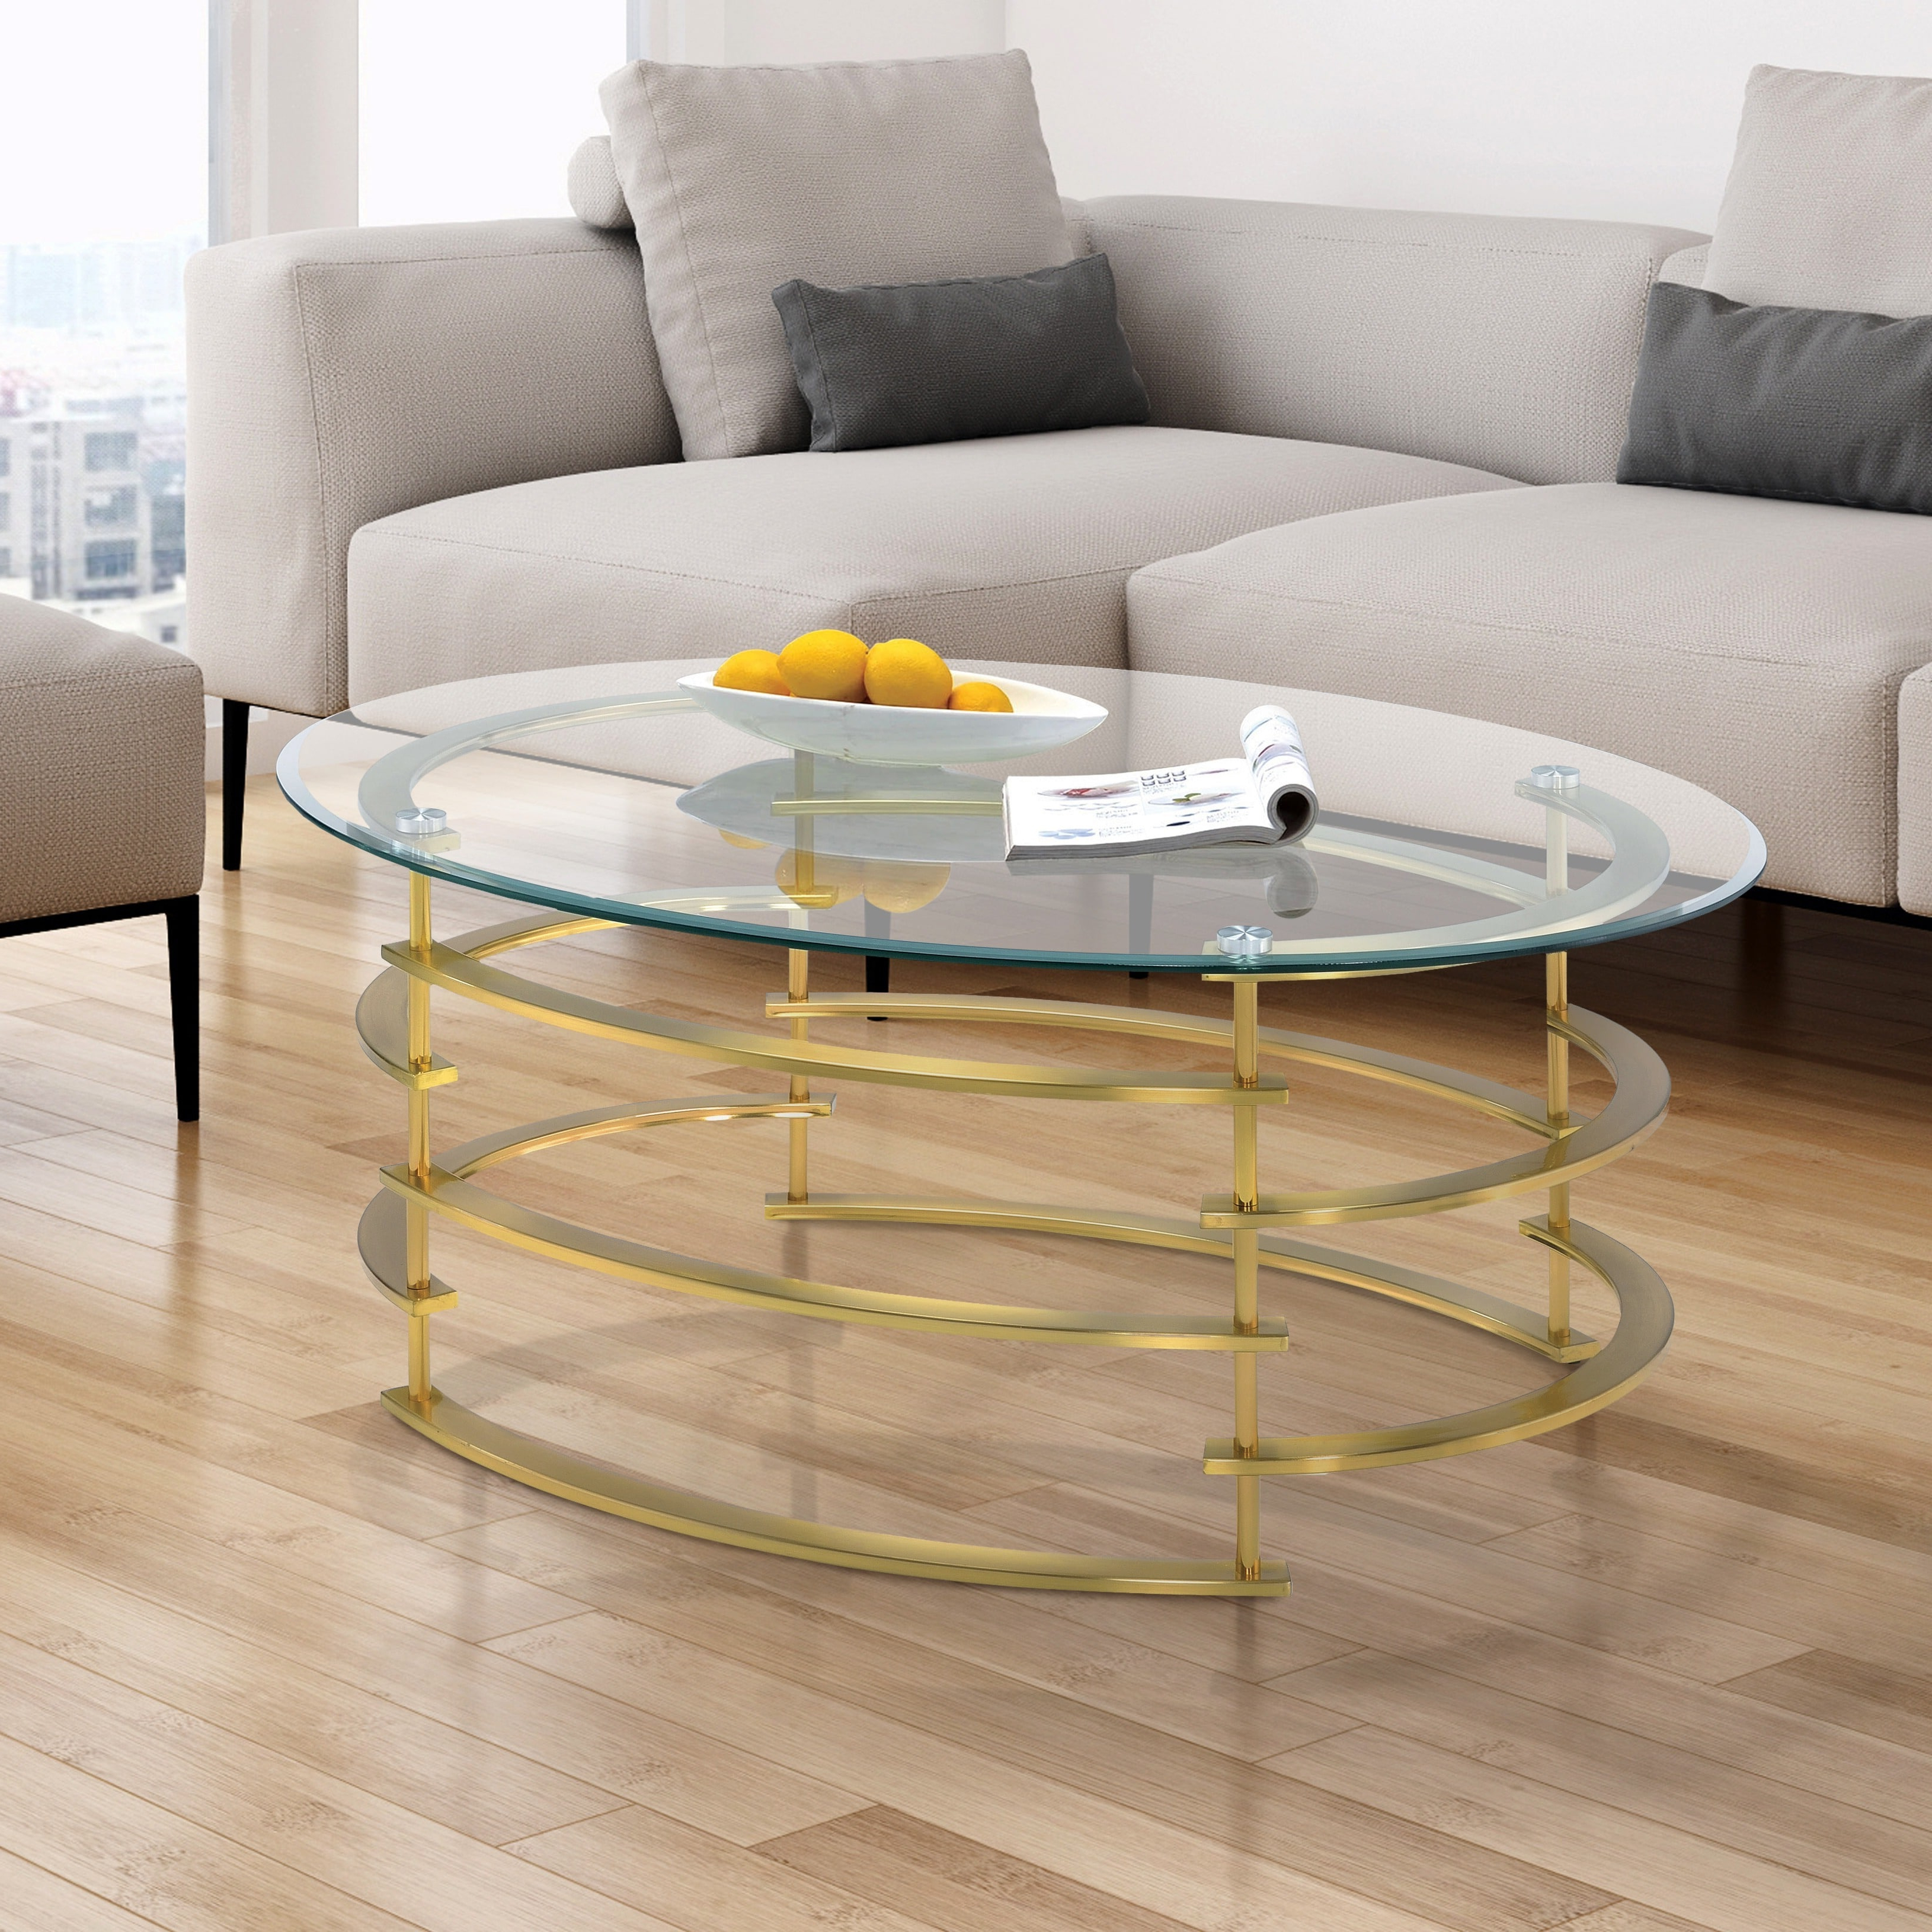 Silver Orchid Marcello Contemporary Glass Top Coffee Table Regarding Widely Used Silver Orchid Ipsen Round Coffee Tables With X Base (View 9 of 20)